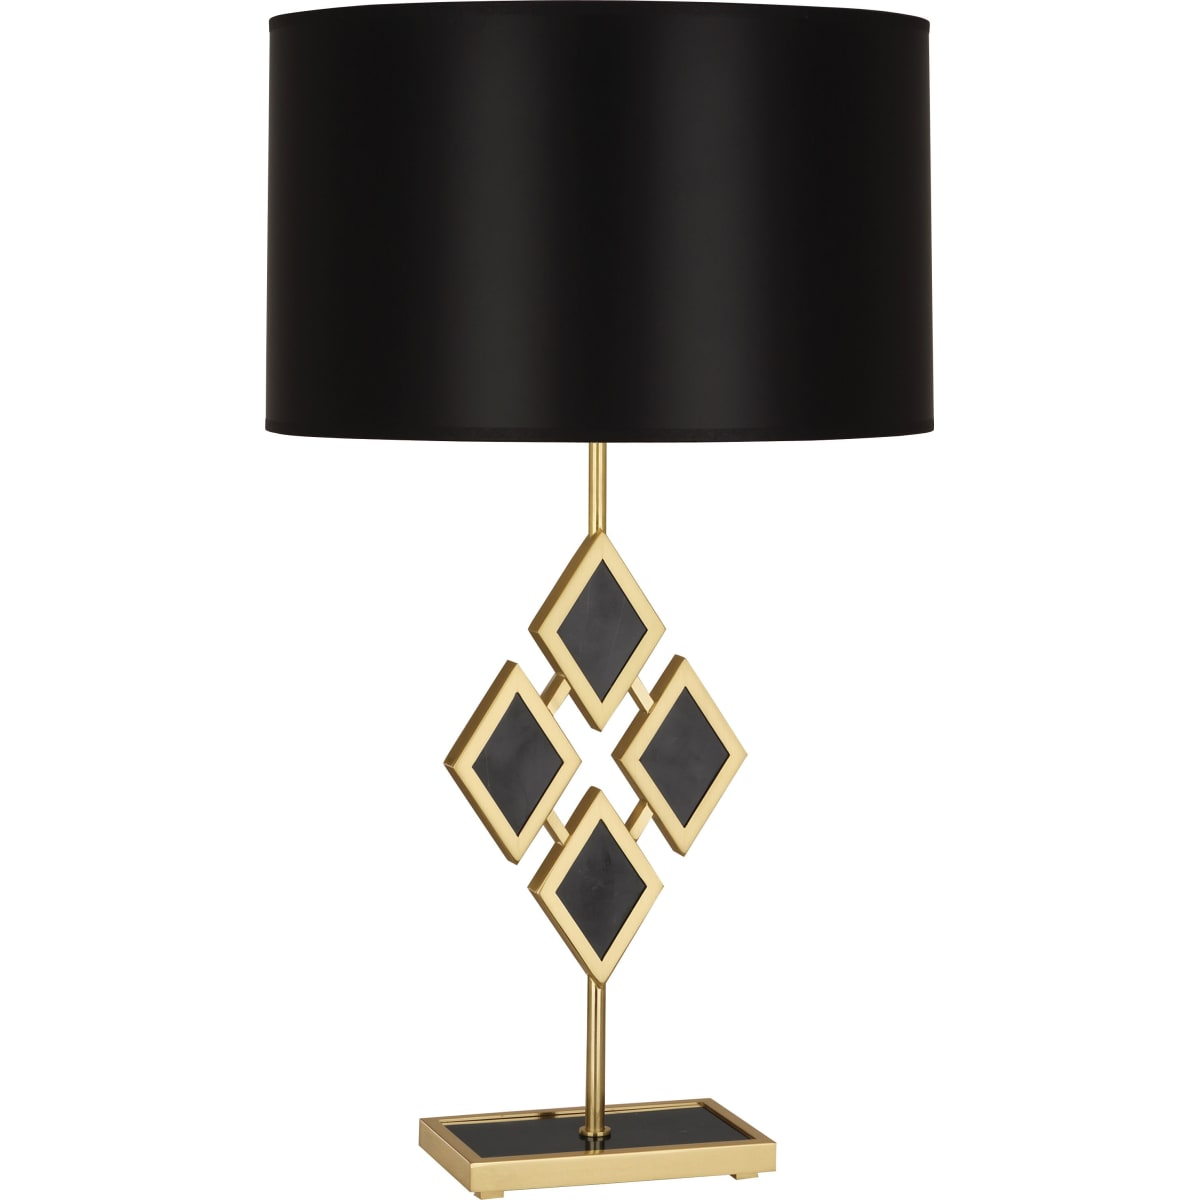 Robert Abbey 420b Modern Brass Edward 29 Novelty Table Lamp With Black Marble Accents And An Opaque Parchment Shade Lightingshowplace Com